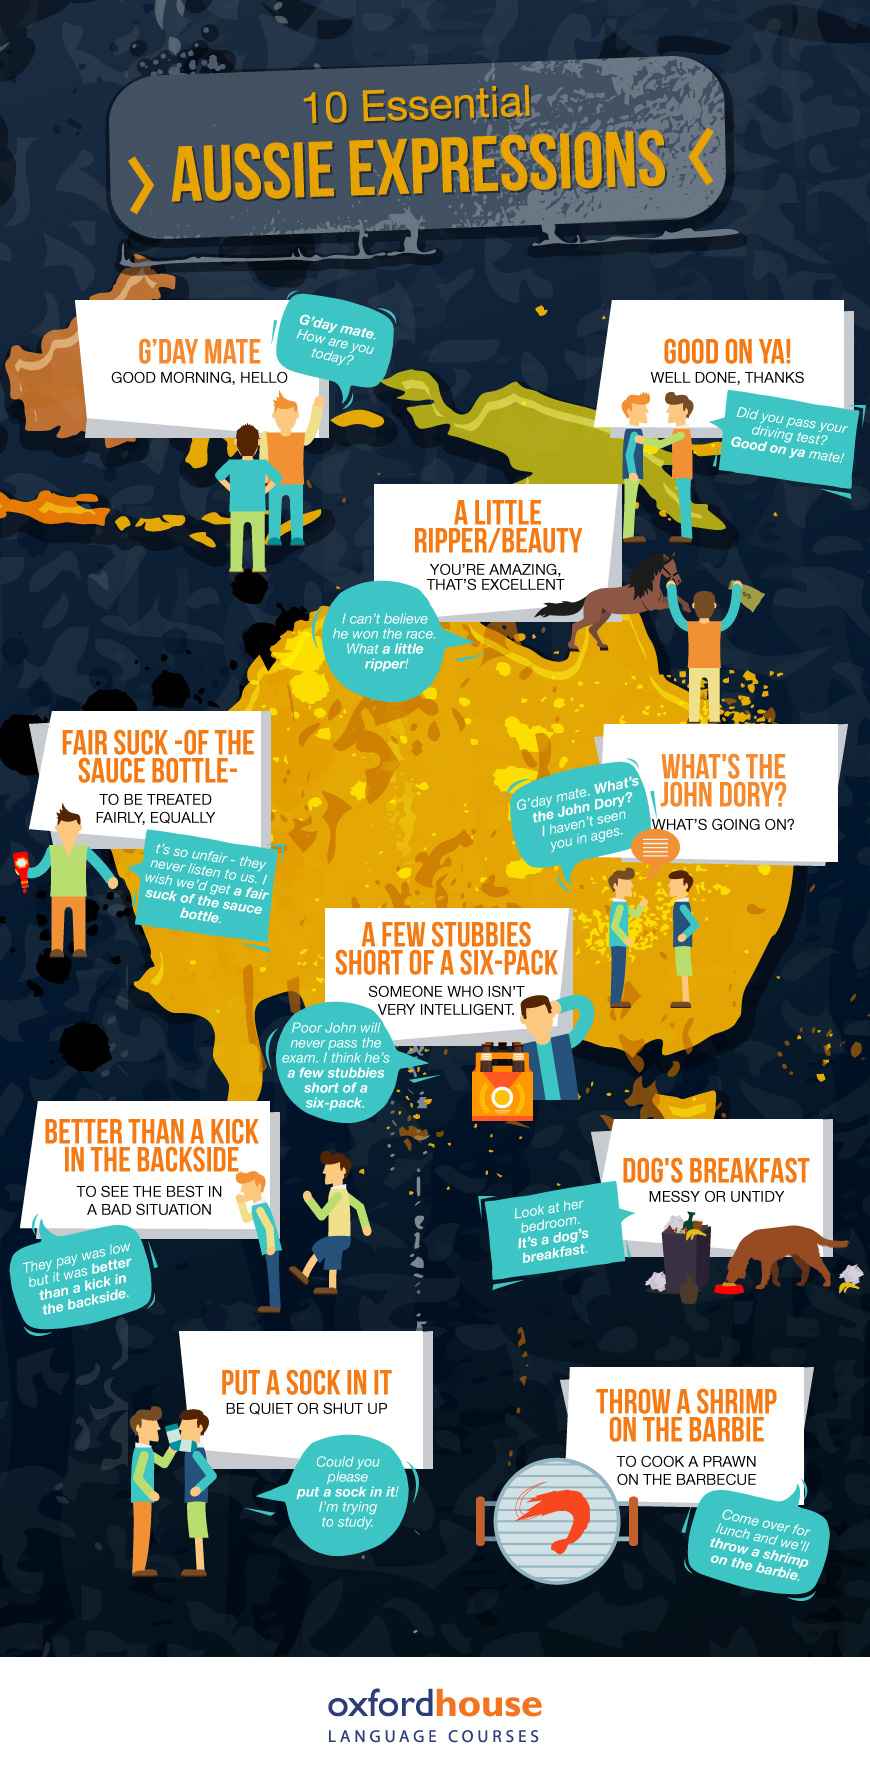 10 Essential Australian Expressions [Infographic] | Oxford House Barcelona